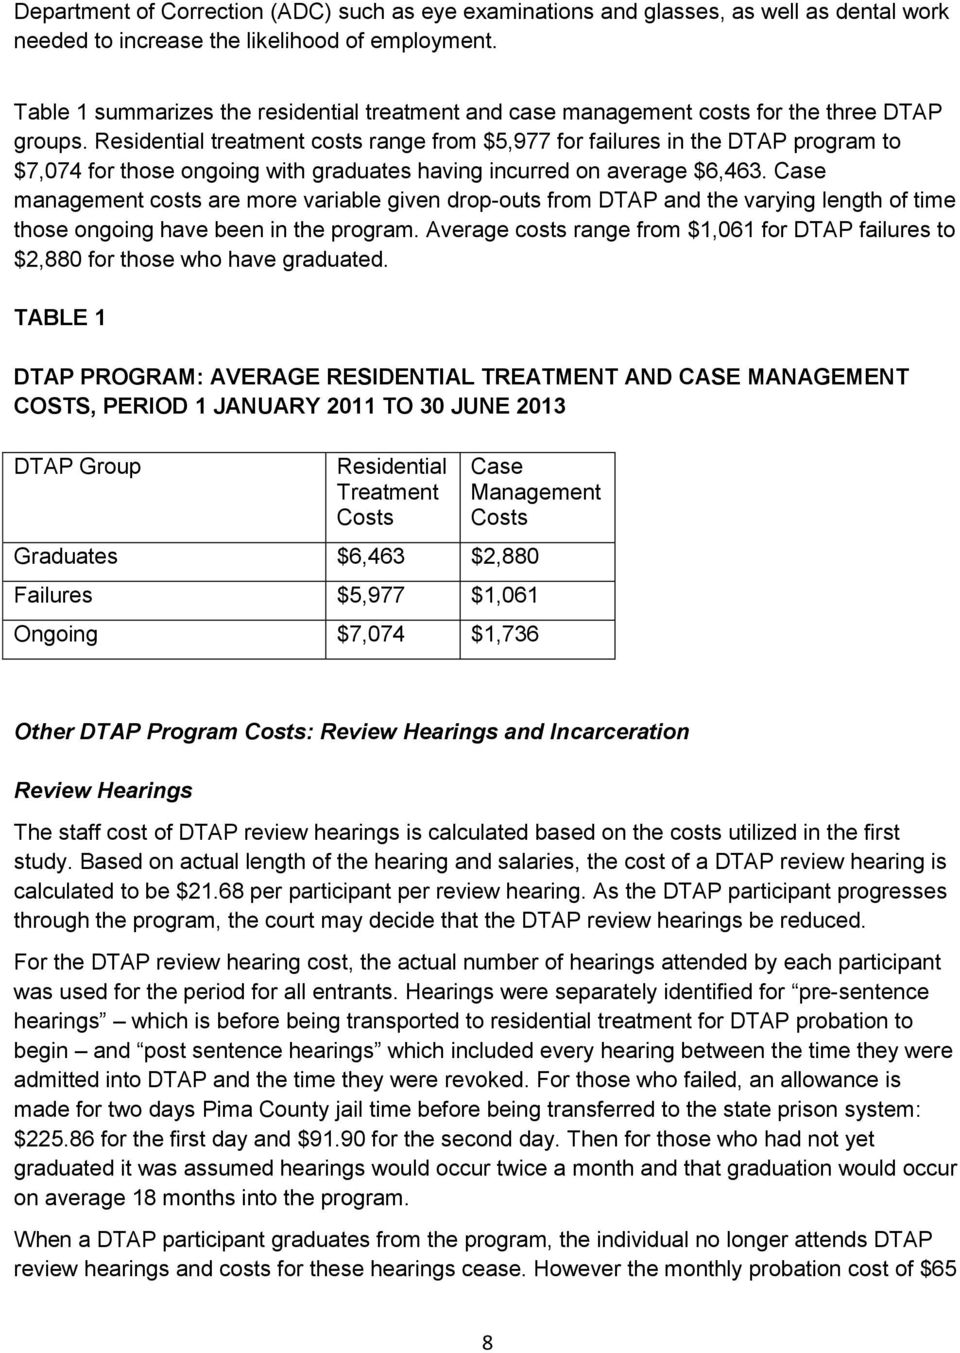 Residential treatment costs range from $5,977 for failures in the DTAP program to $7,074 for those ongoing with graduates having incurred on average $6,463.